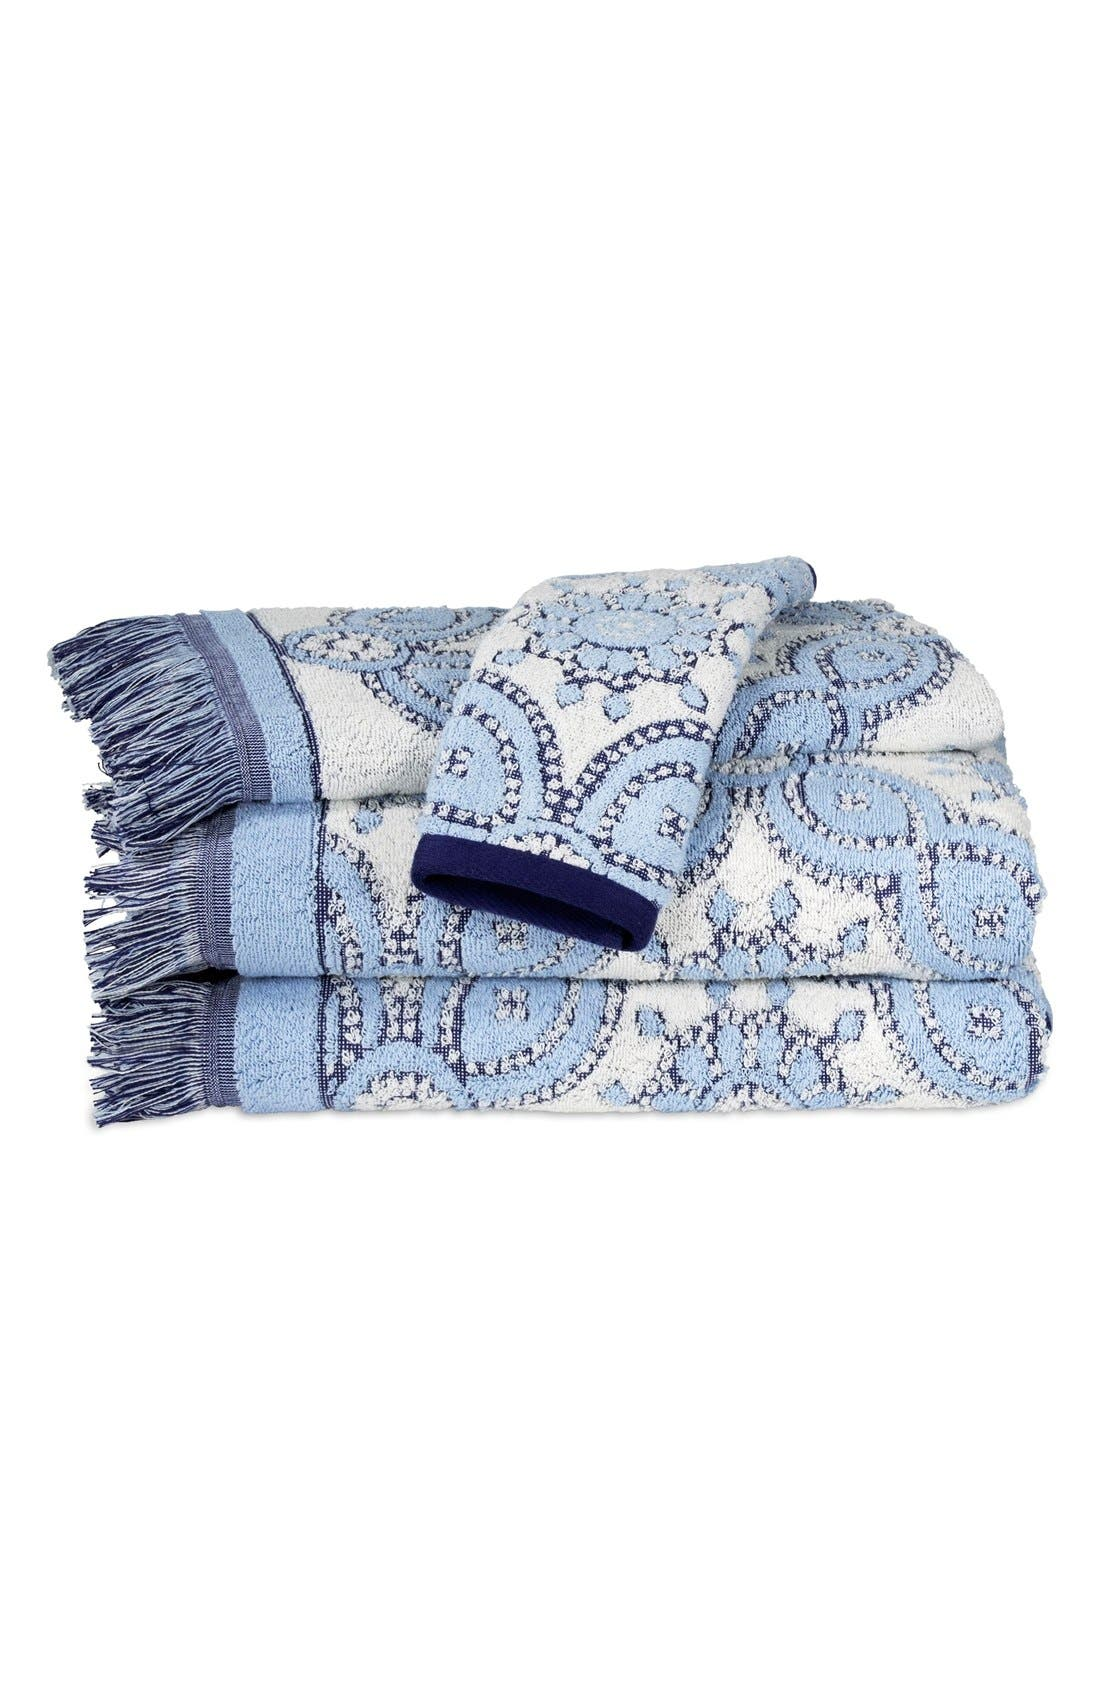 Alternate Image 1 Selected - John Robshaw 'Petra' Cotton Hand Towel